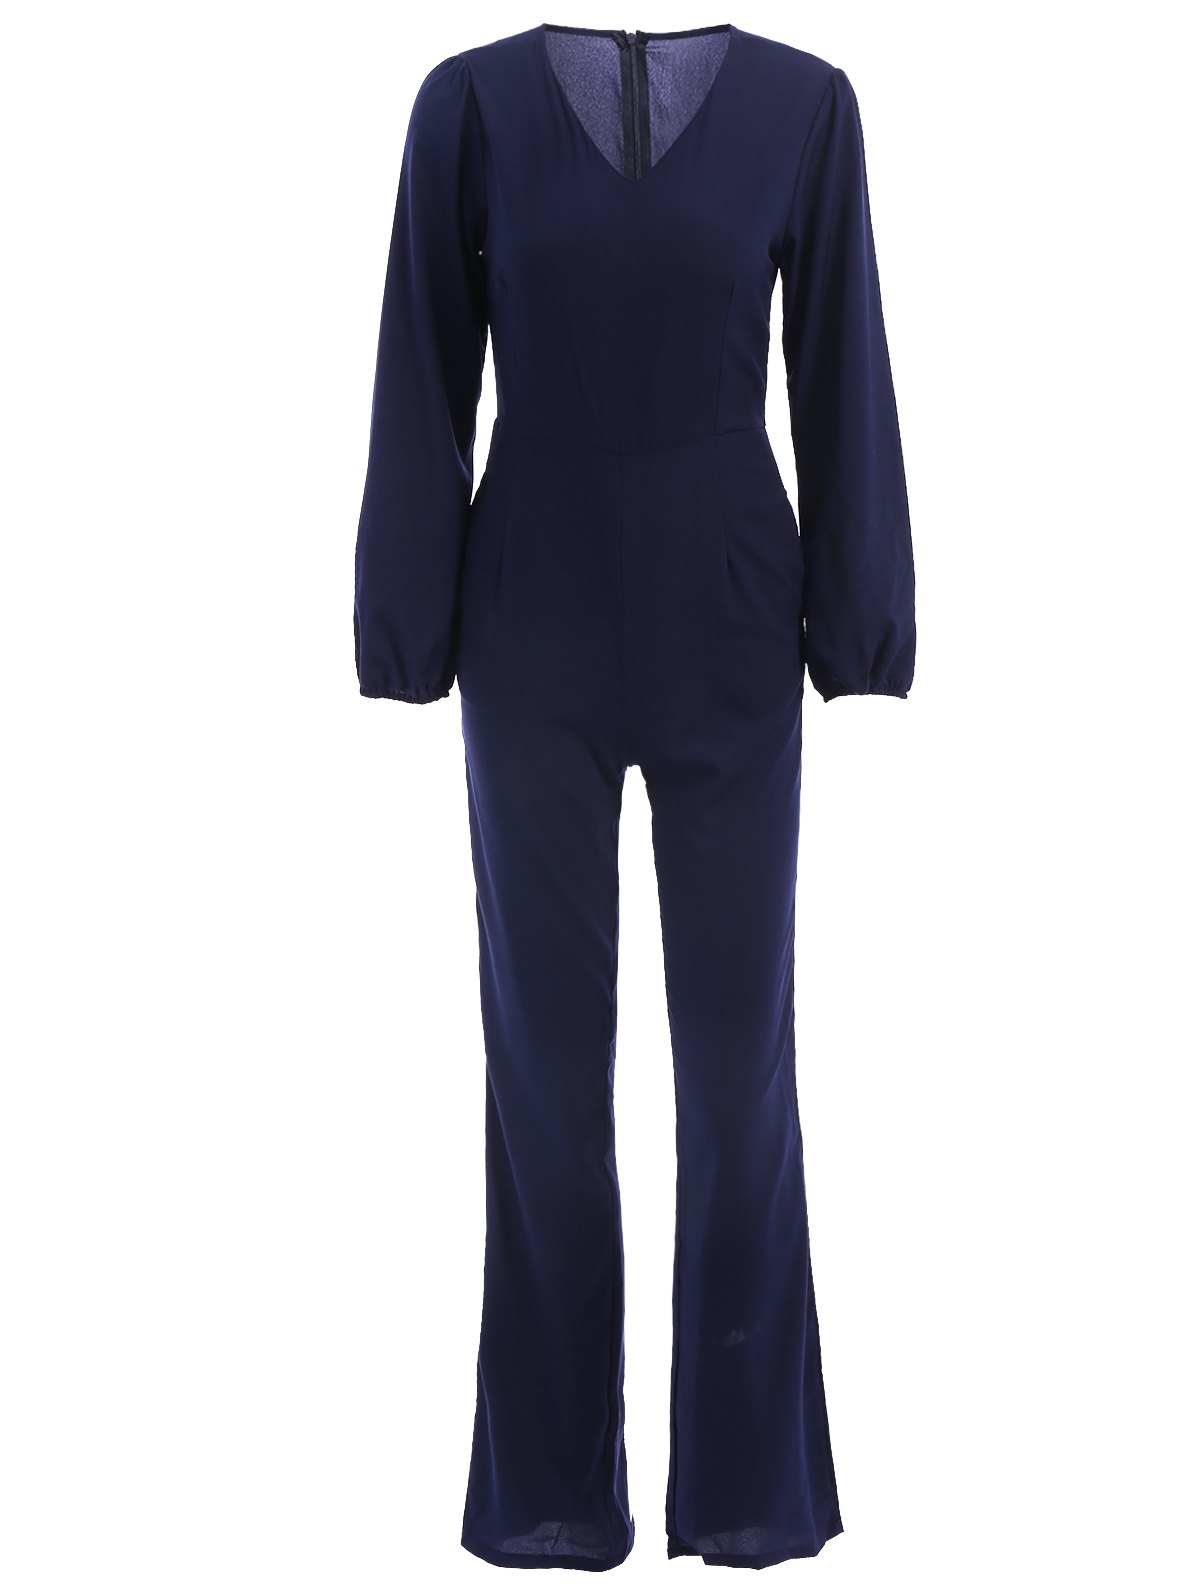 Stylish V-Neck Long Sleeve Loose-Fitting Solid Color Women's Jumpsuit - M DEEP BLUE